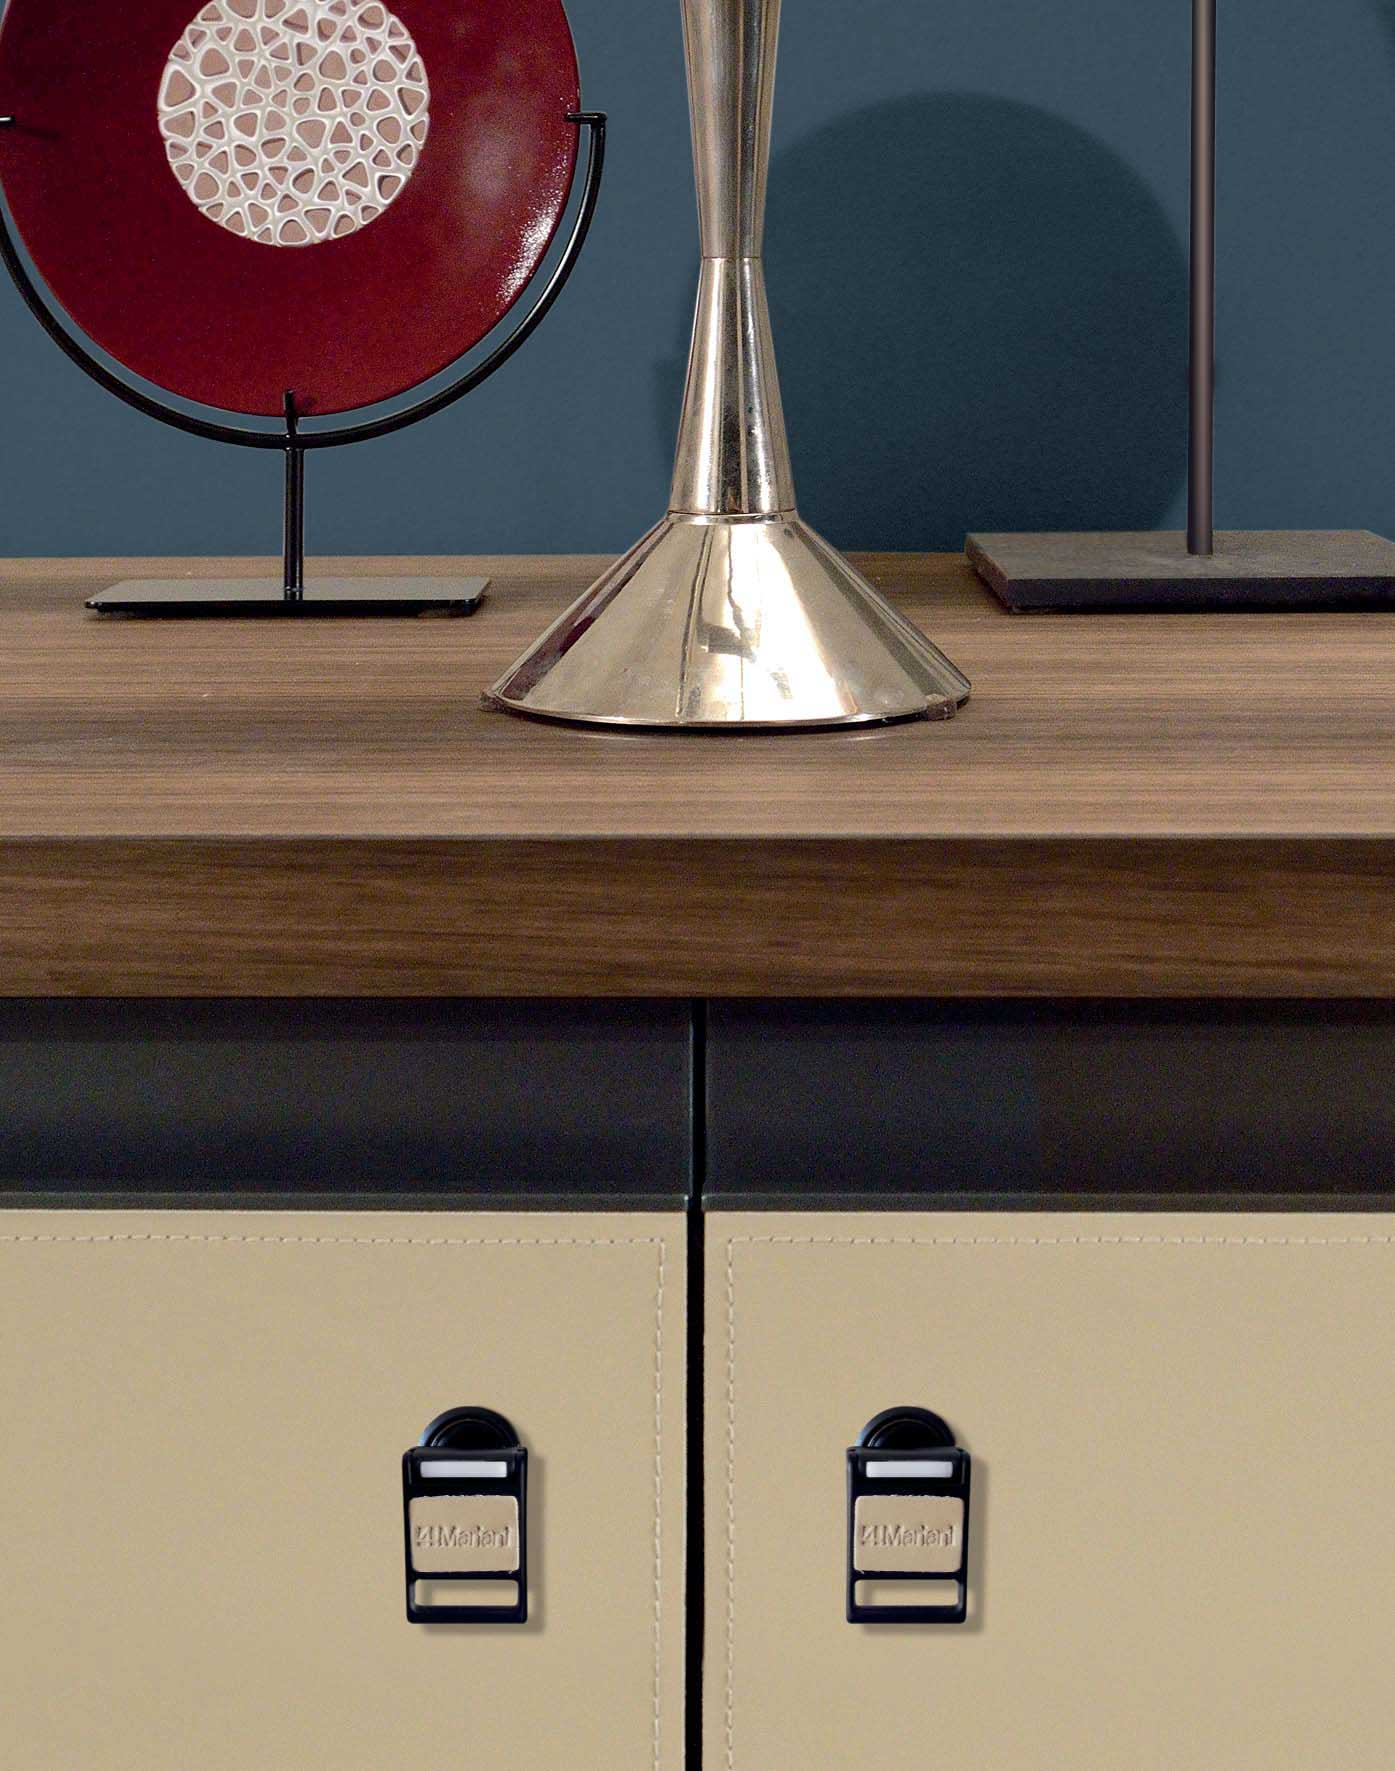 Kefa 4 doors low cabinet is perfect at home as at the office. Design Matteo Nunziati. Eucalyptus wood and saddle leather finishing. Free home delivery.